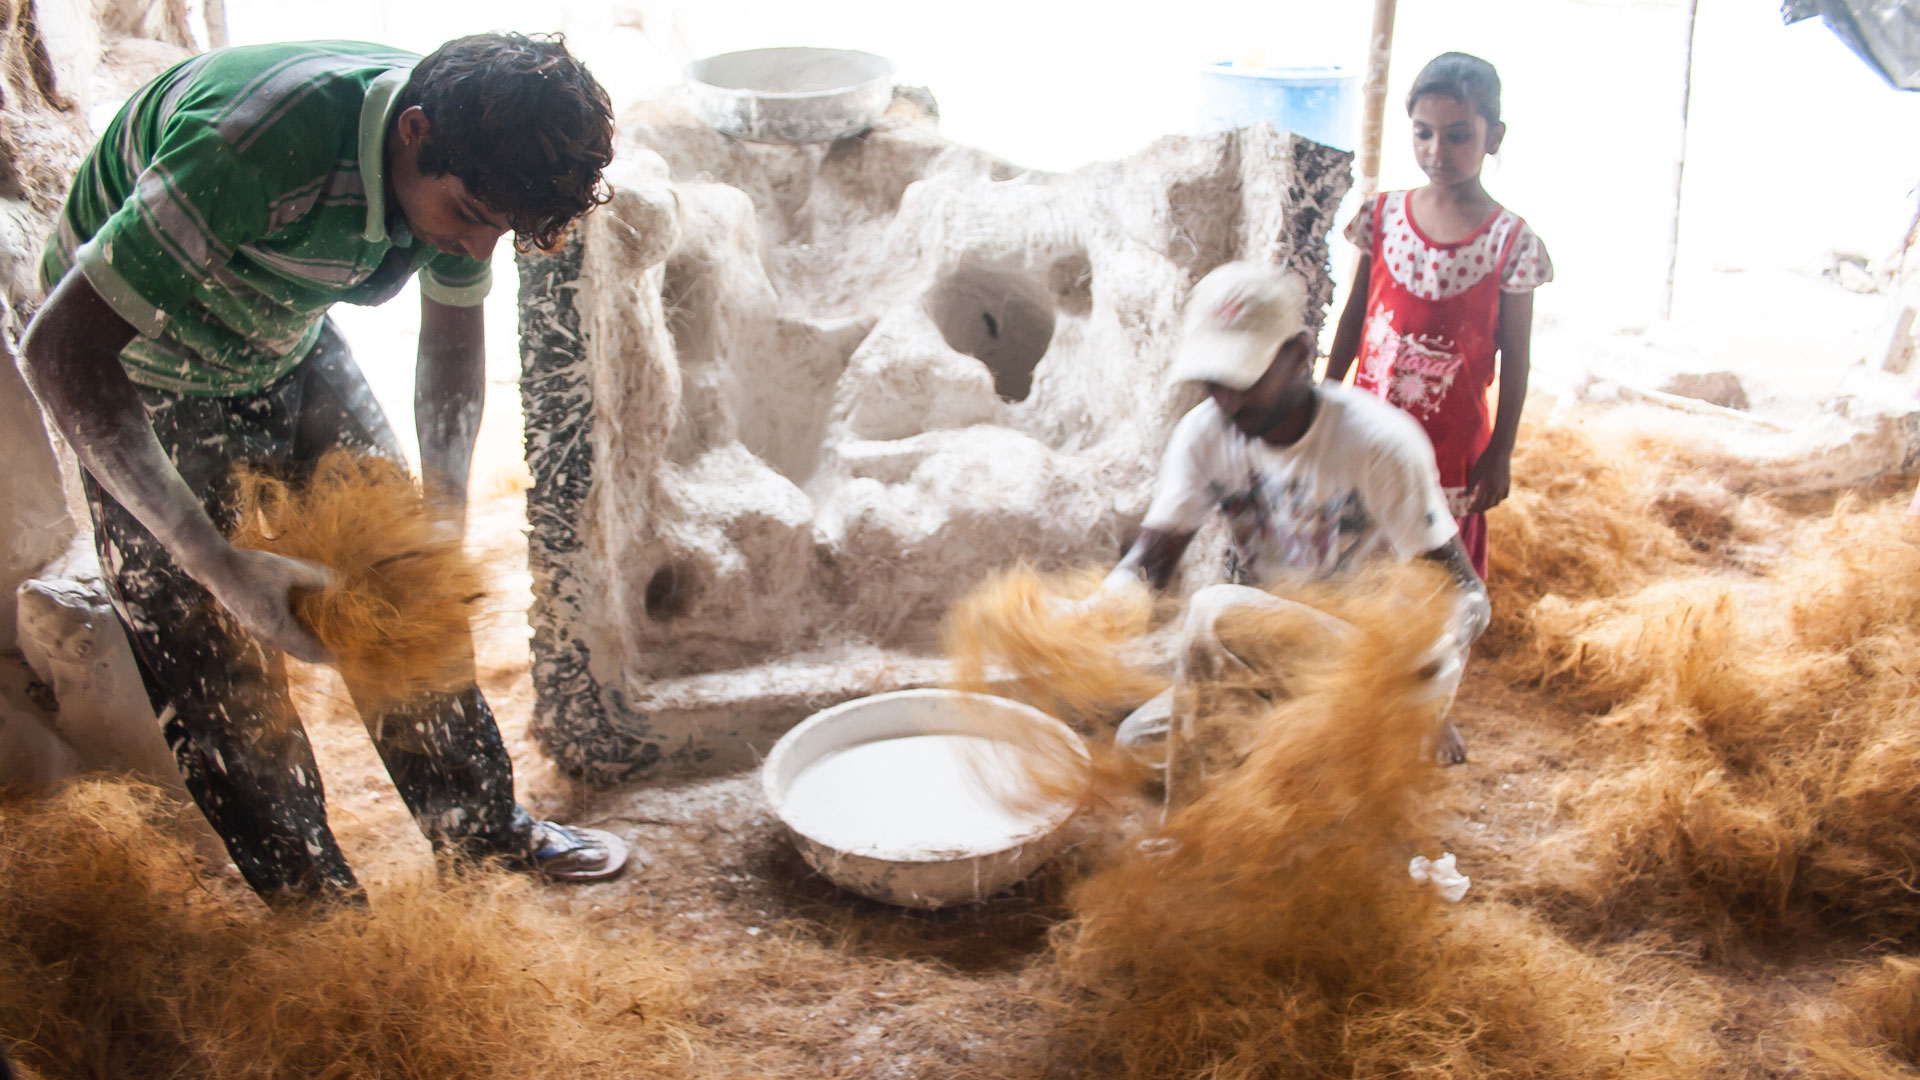 Mixing the coconut coir fibers with the plaster to build the Ganesh idol | Creating a Ganesh idol is a family trade in the Hollywood slum in Ahmedabad, India. We met some of the artists.